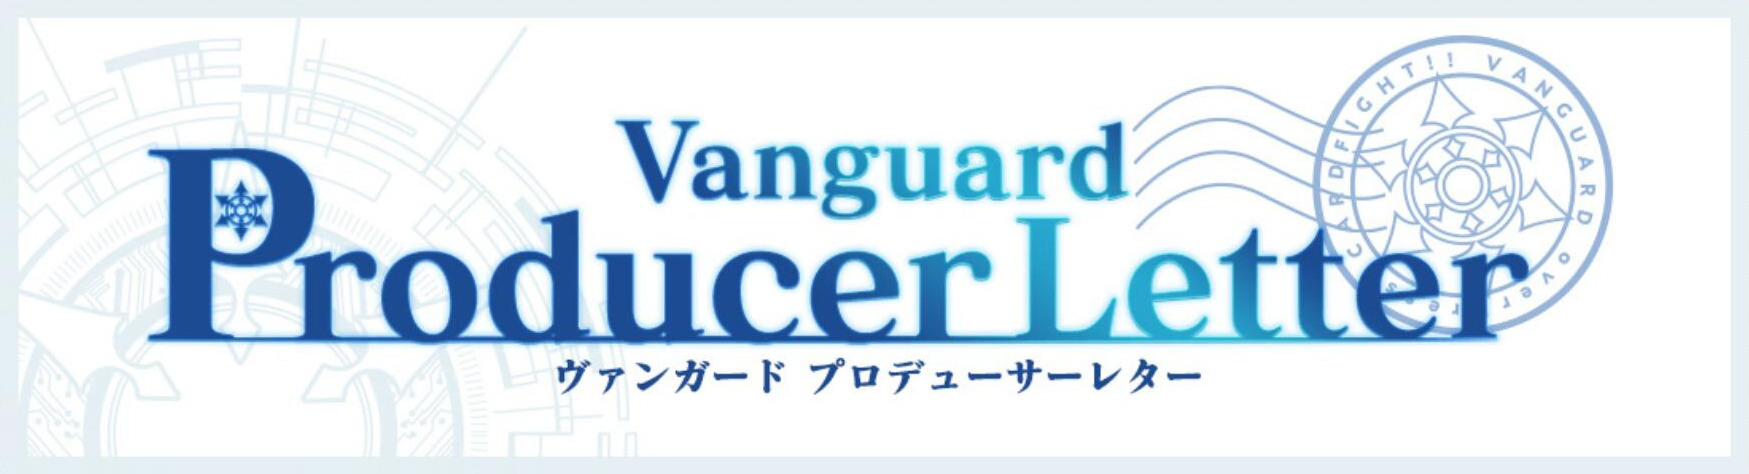 Cardfight!! Vanguard Producer's Letter/カードファイト!! ヴァンガード・プロデューサーレター